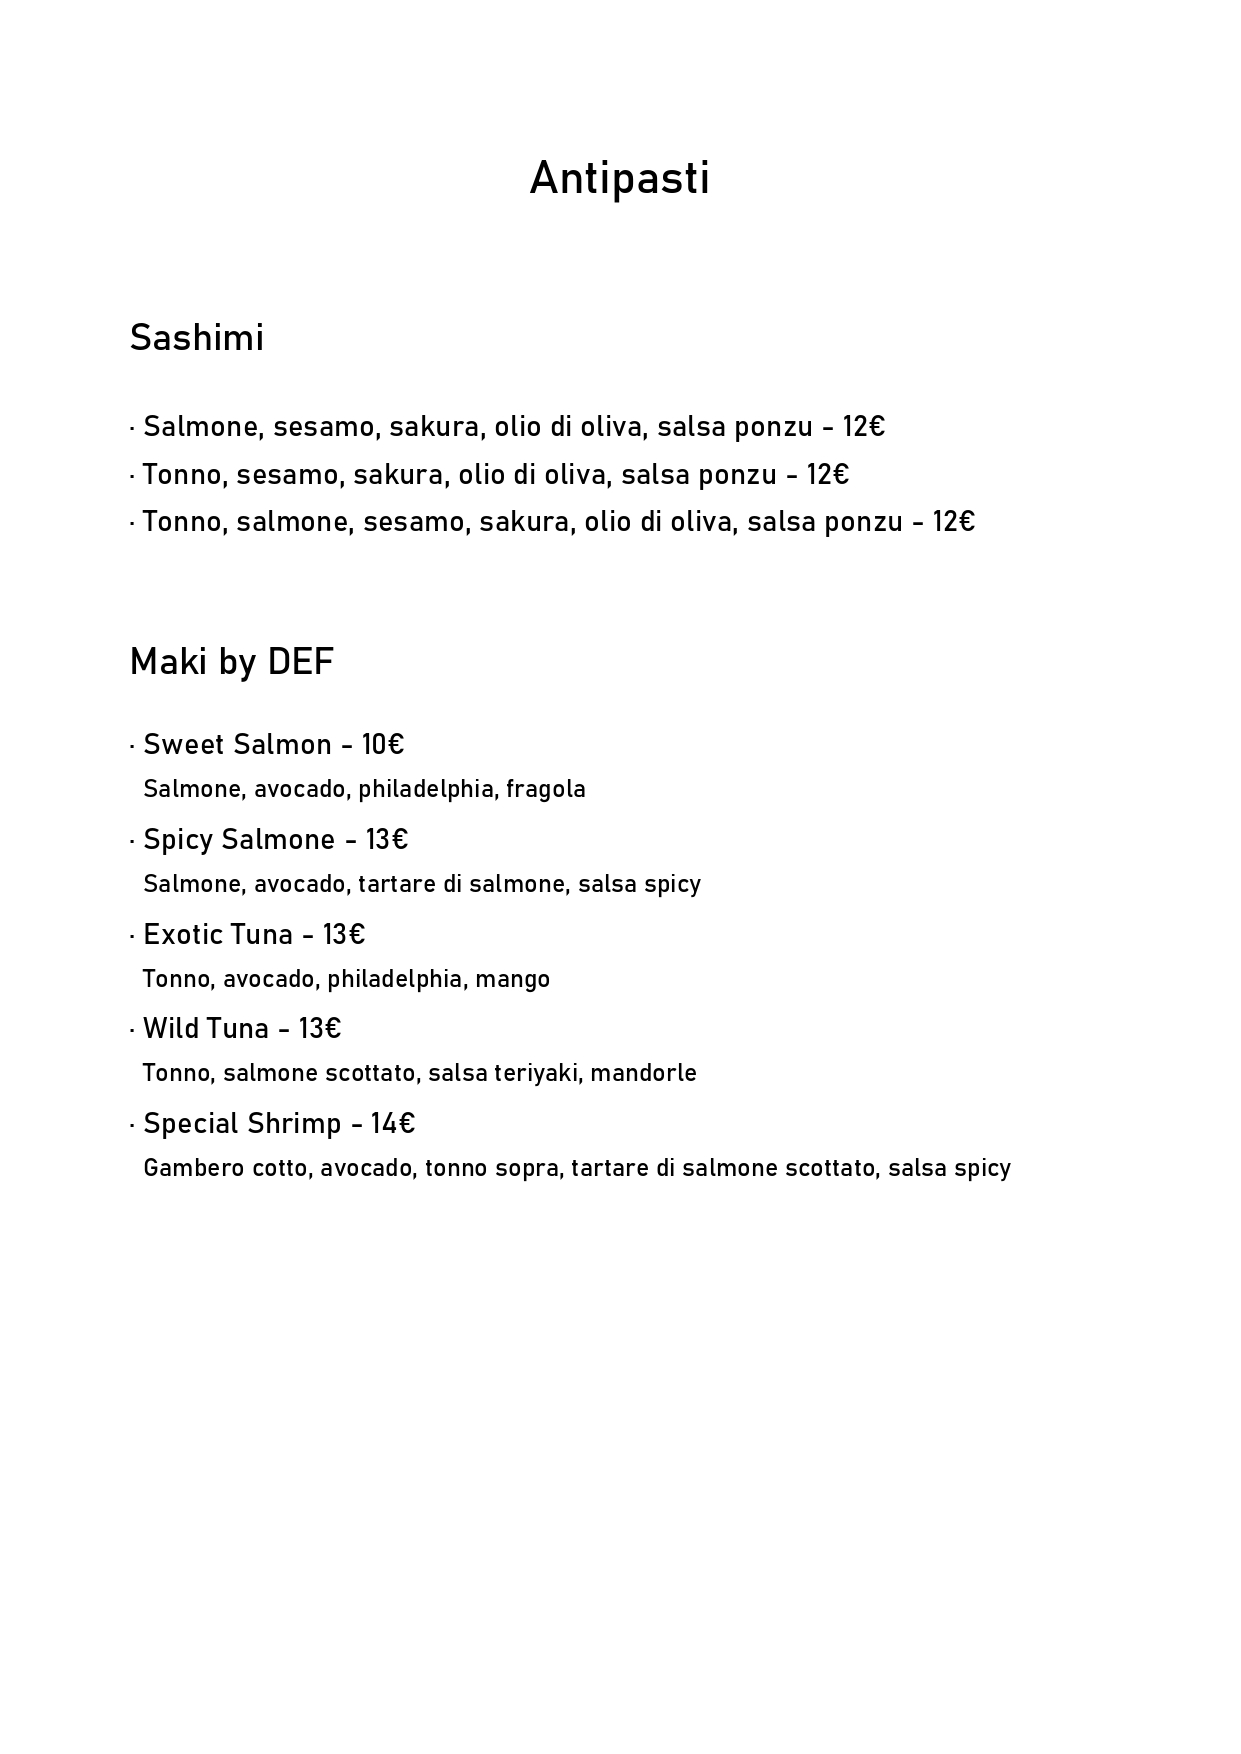 2020.09.02_DEF_Menu_Sistemato_Food_page-0002-FILEminimizer-1